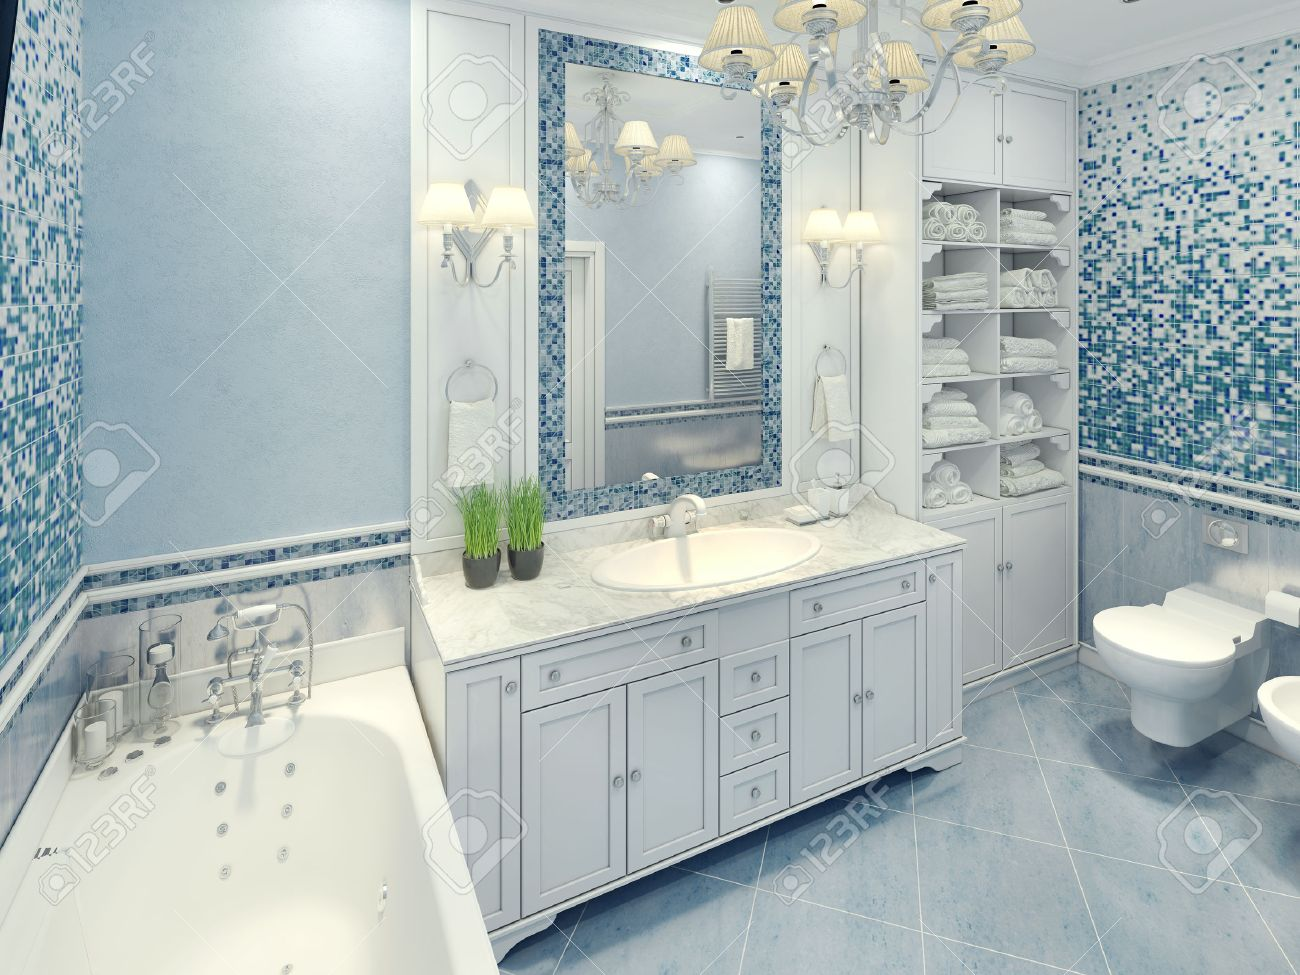 Delicieux Bright Art Deco Bathroom Interior. The Spacious Bathroom With White  Furniture And Fragments Of Mosaic